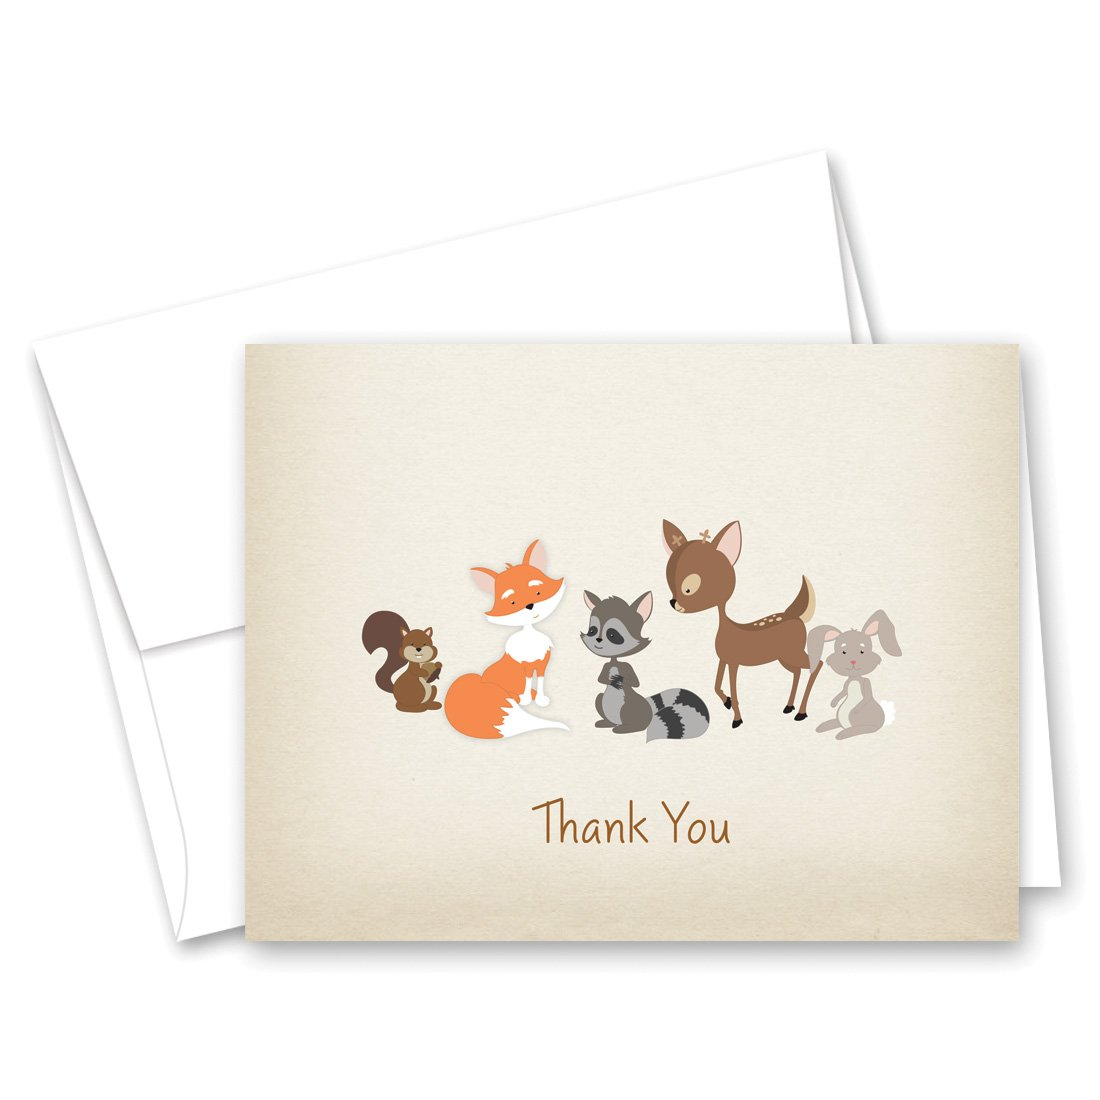 MyExpression.com 50 Cnt Woodland Animals Rustic Baby Shower Thank You Cards